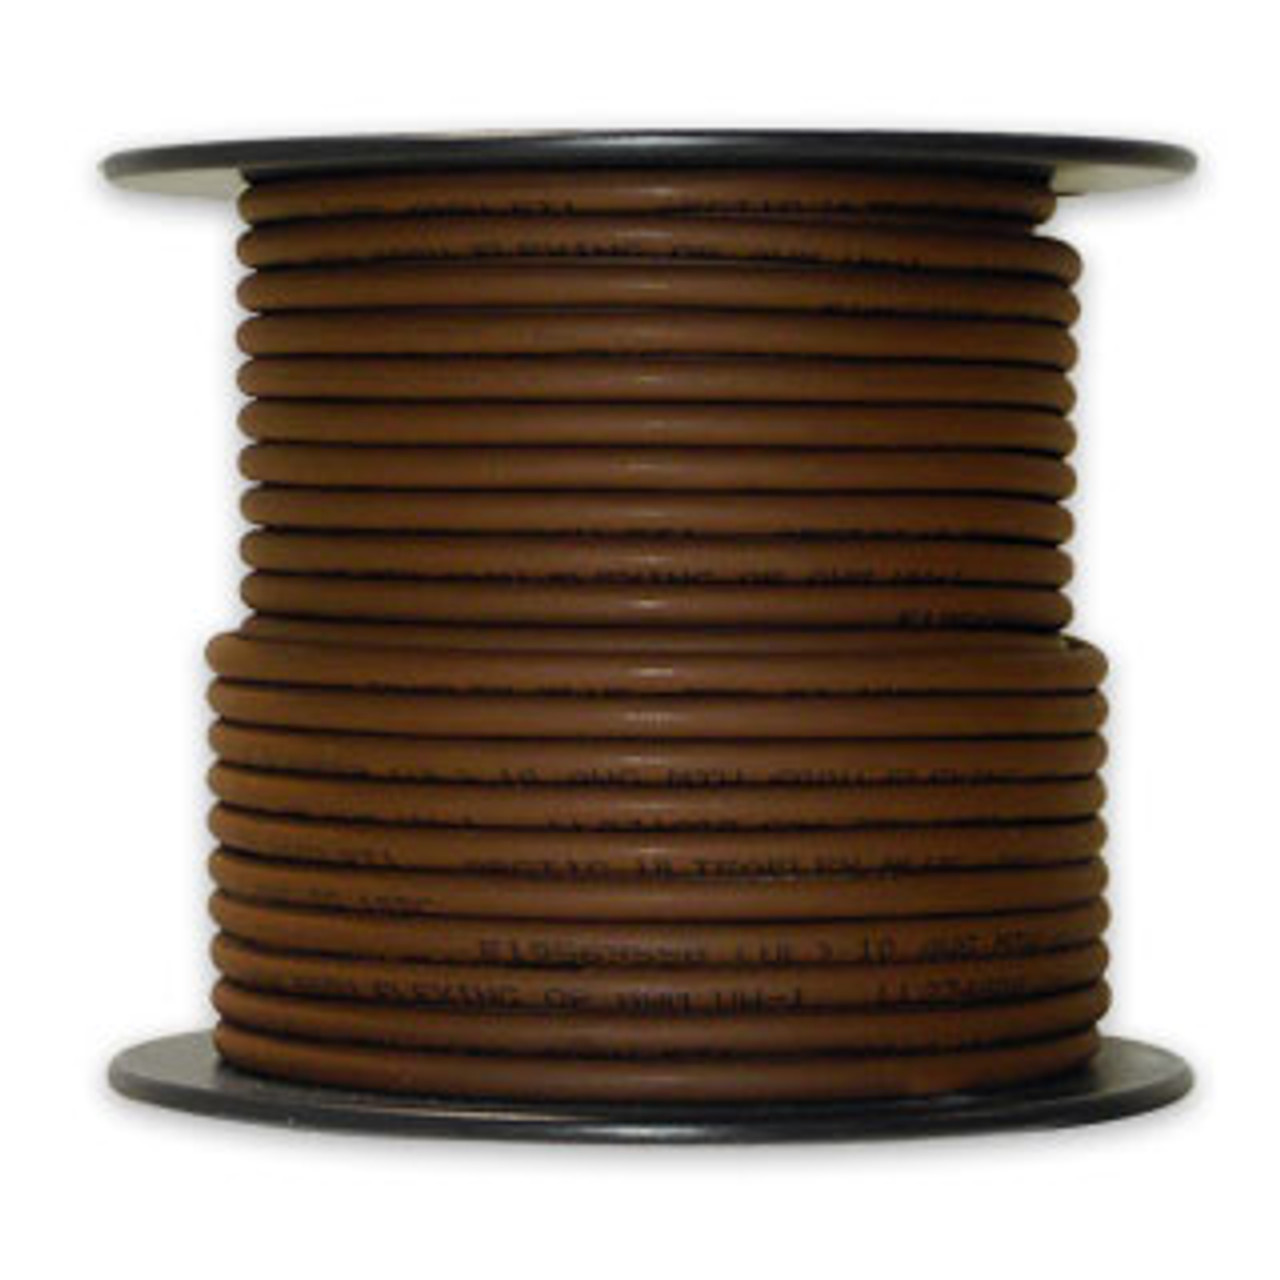 Arctic Ultraflex Cold Weather Flexible Wire 100 Foot Spool 12 AWG Brown Single Conductor Wire tinned fine strand 100% copper